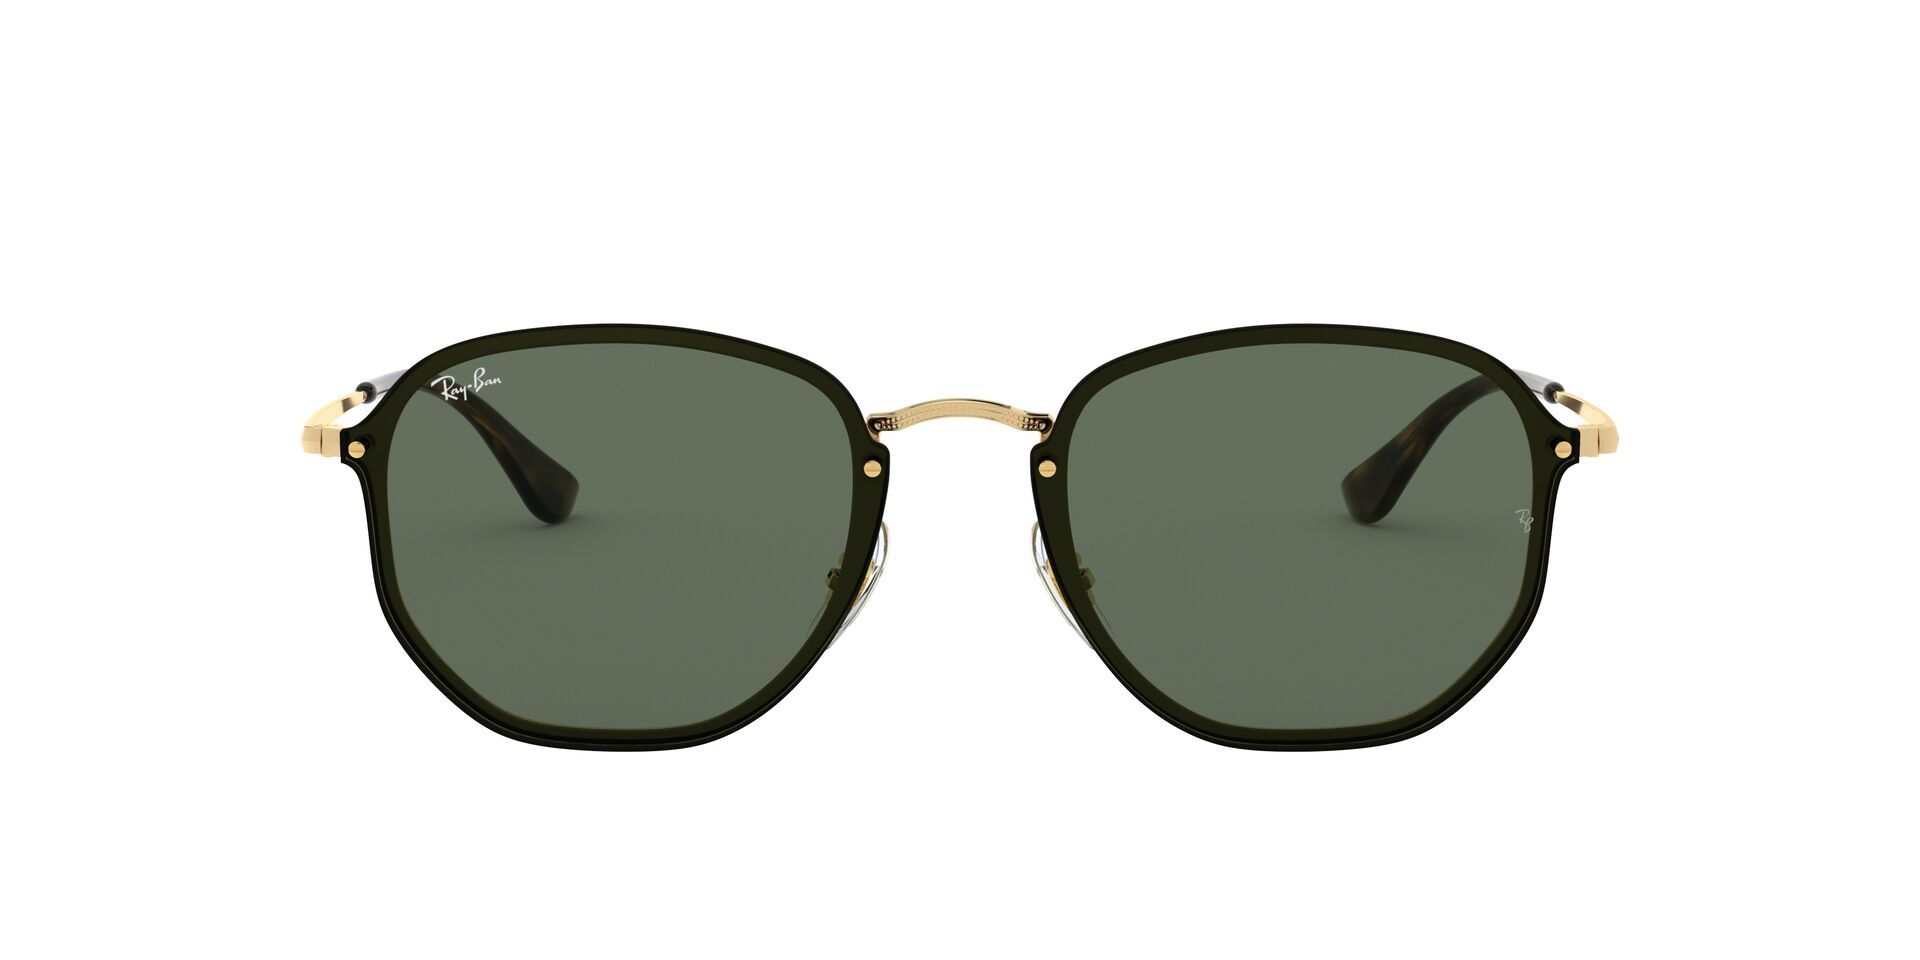 Ray Ban - RB3579N Gold Oval Unisex Sunglasses - 58mm-Sunglasses-Designer Eyes